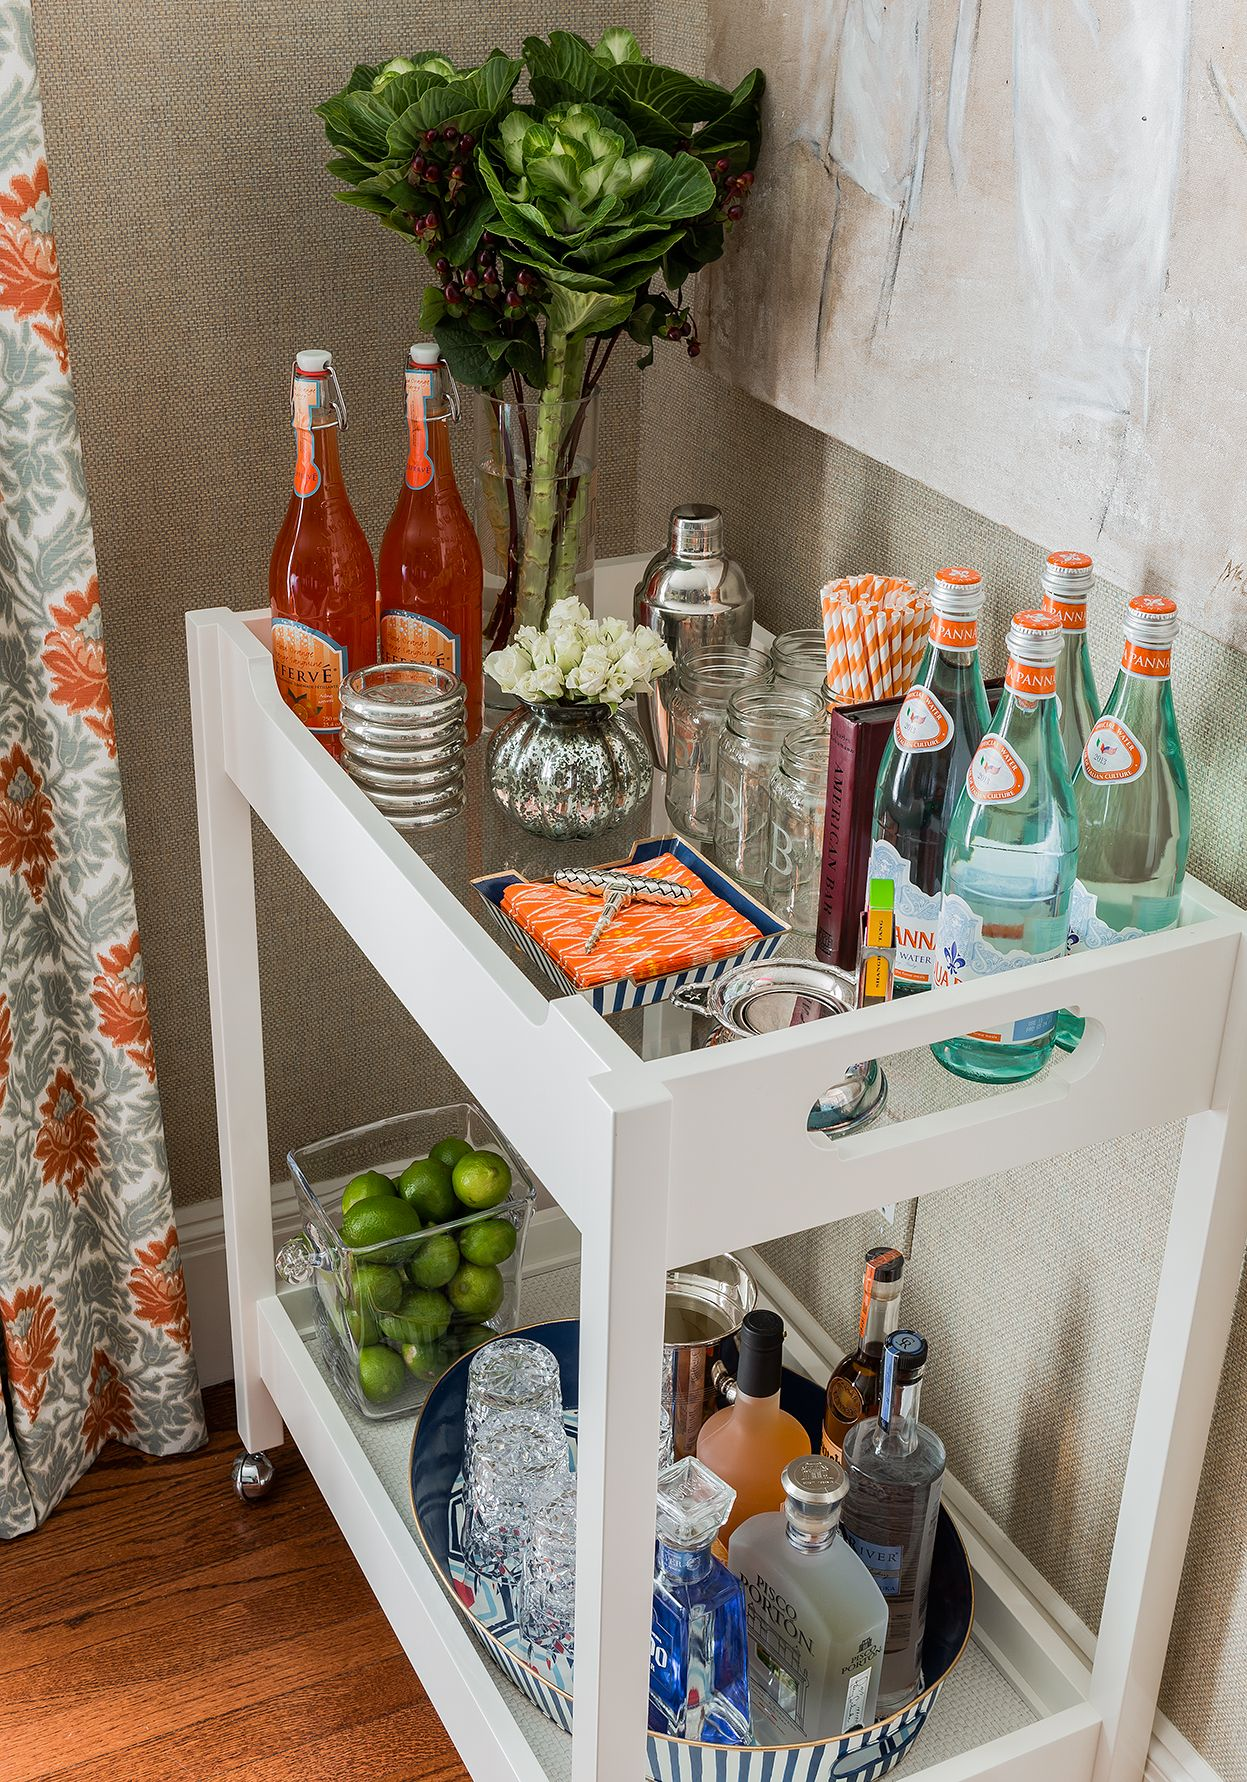 Media Sourcing | Party Planner | Pinterest | Bar carts, Portable bar ...